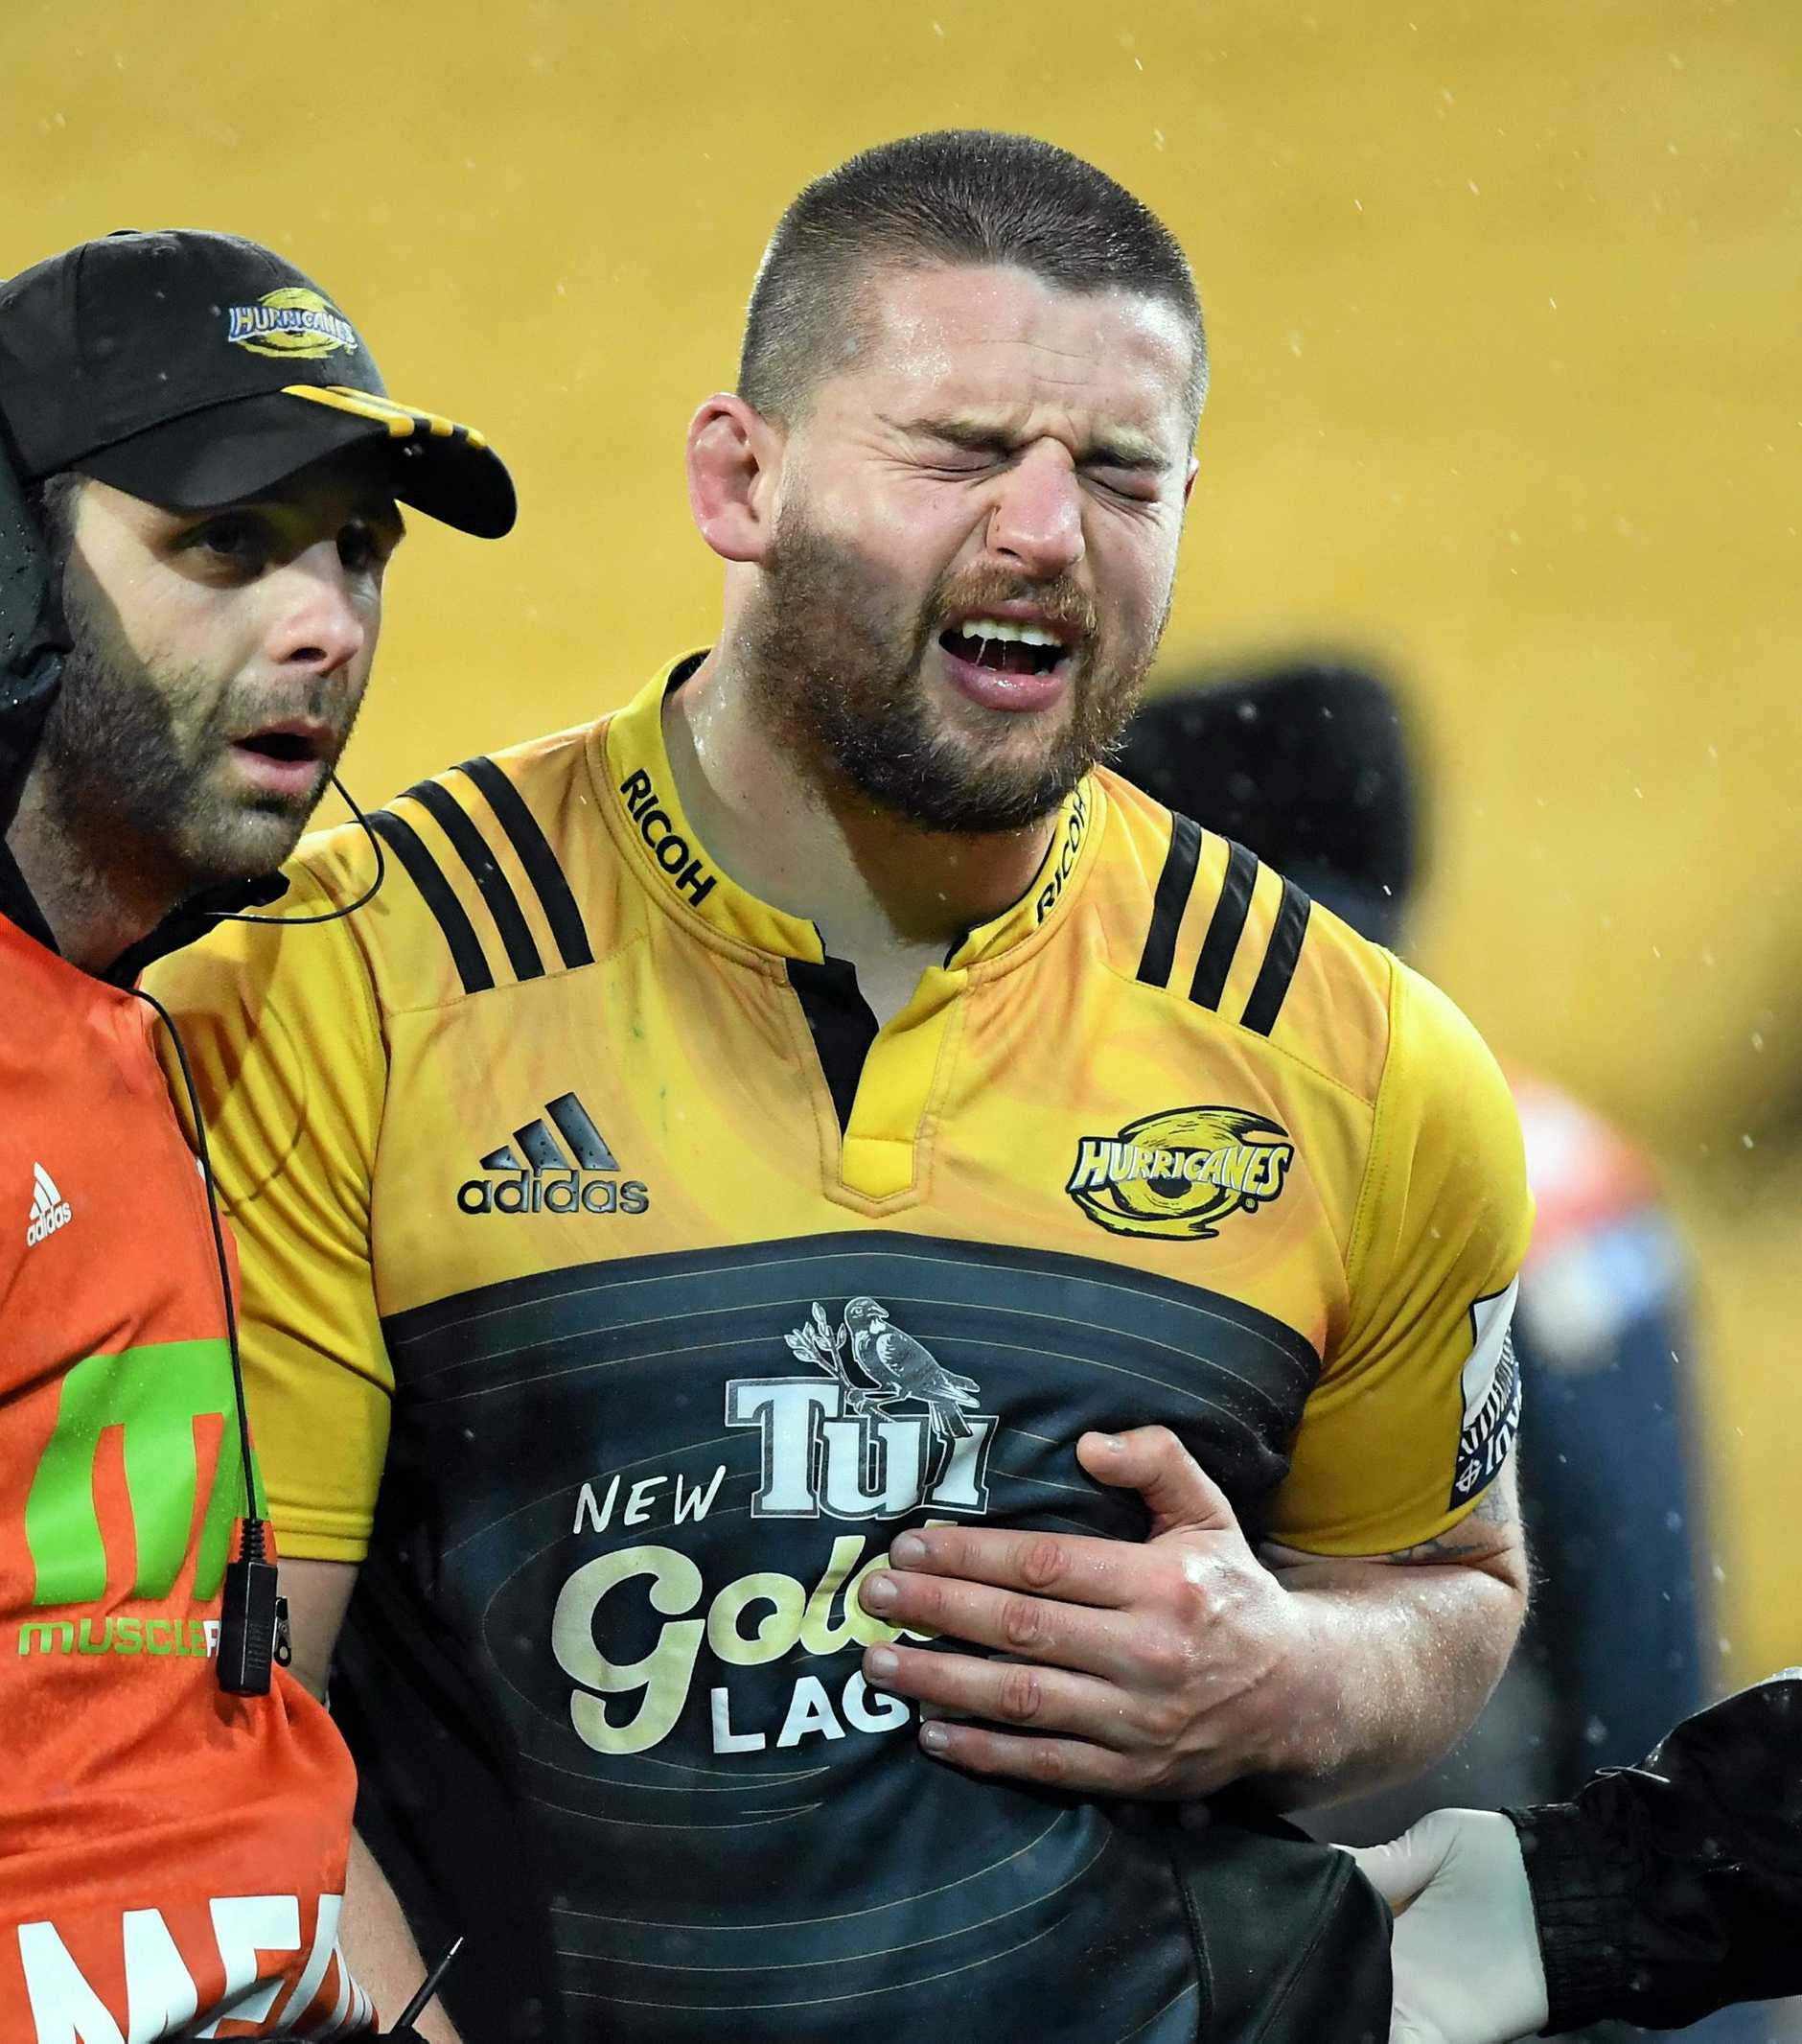 IN DOUBT: Dane Coles of the Hurricanes leaves the field injured during the quarter-final between the Hurricanes and the Sharks.